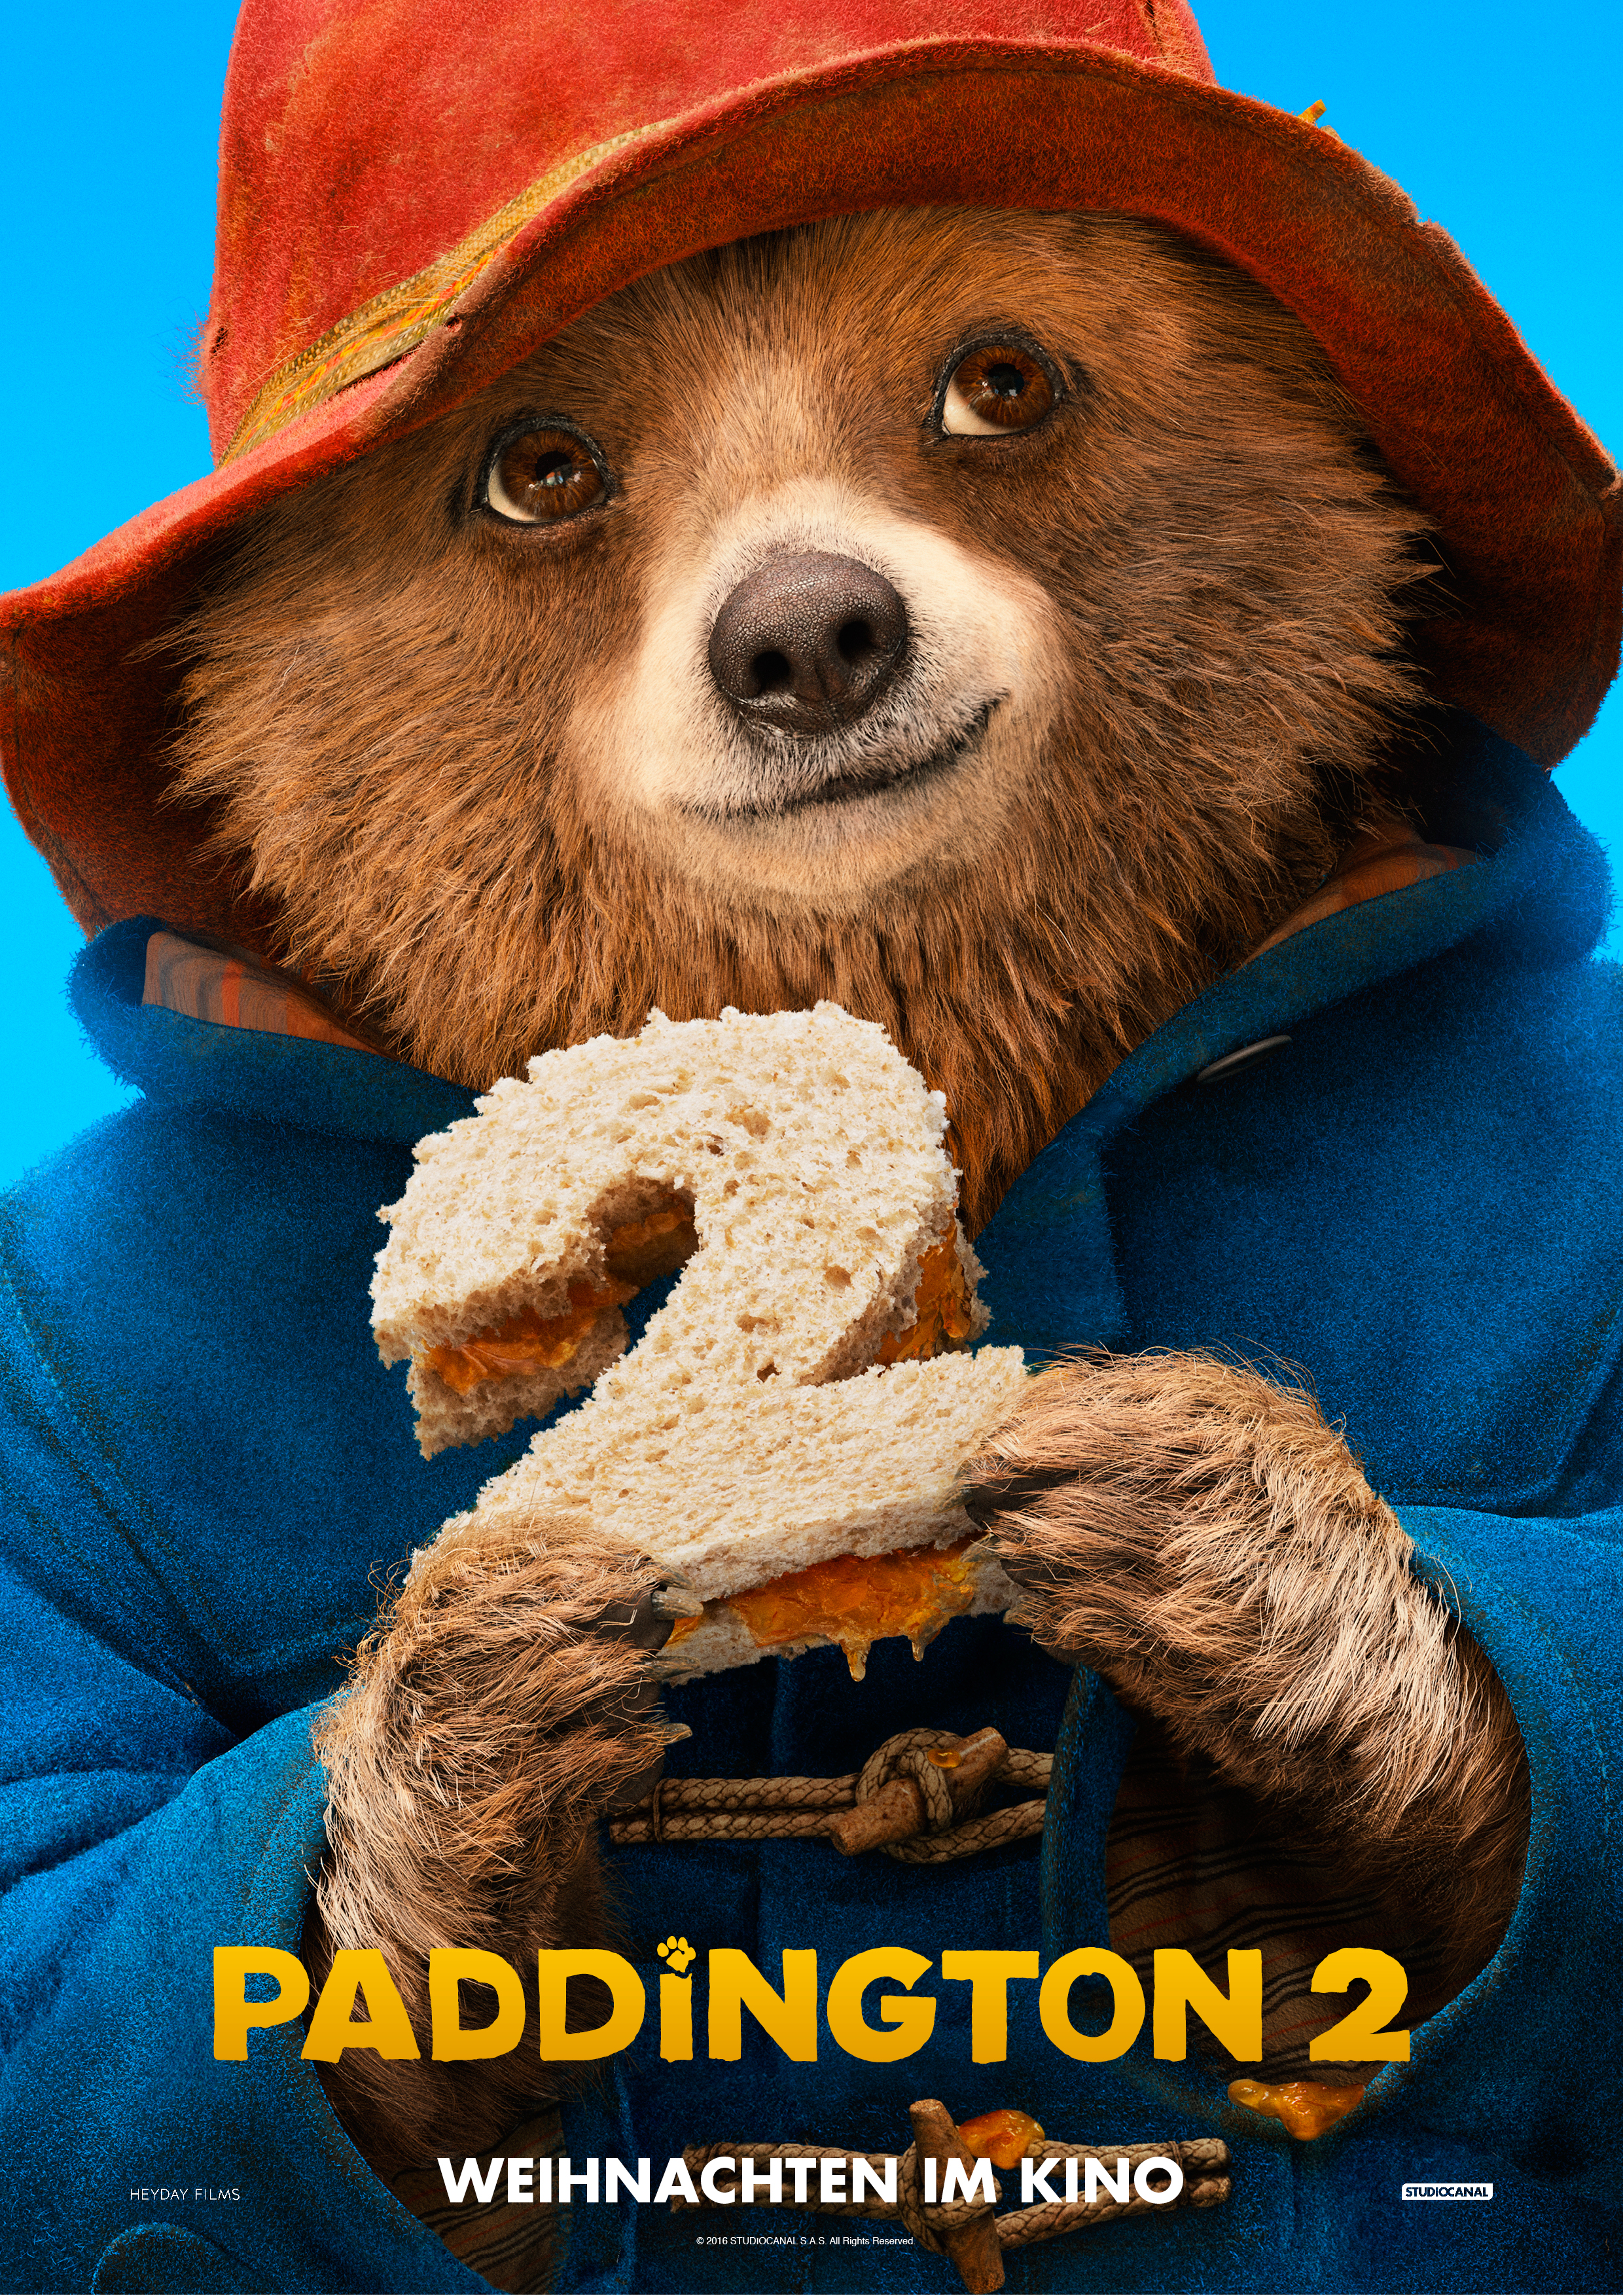 Better than Citizen Kane: Paddington 2 is best movie of all time